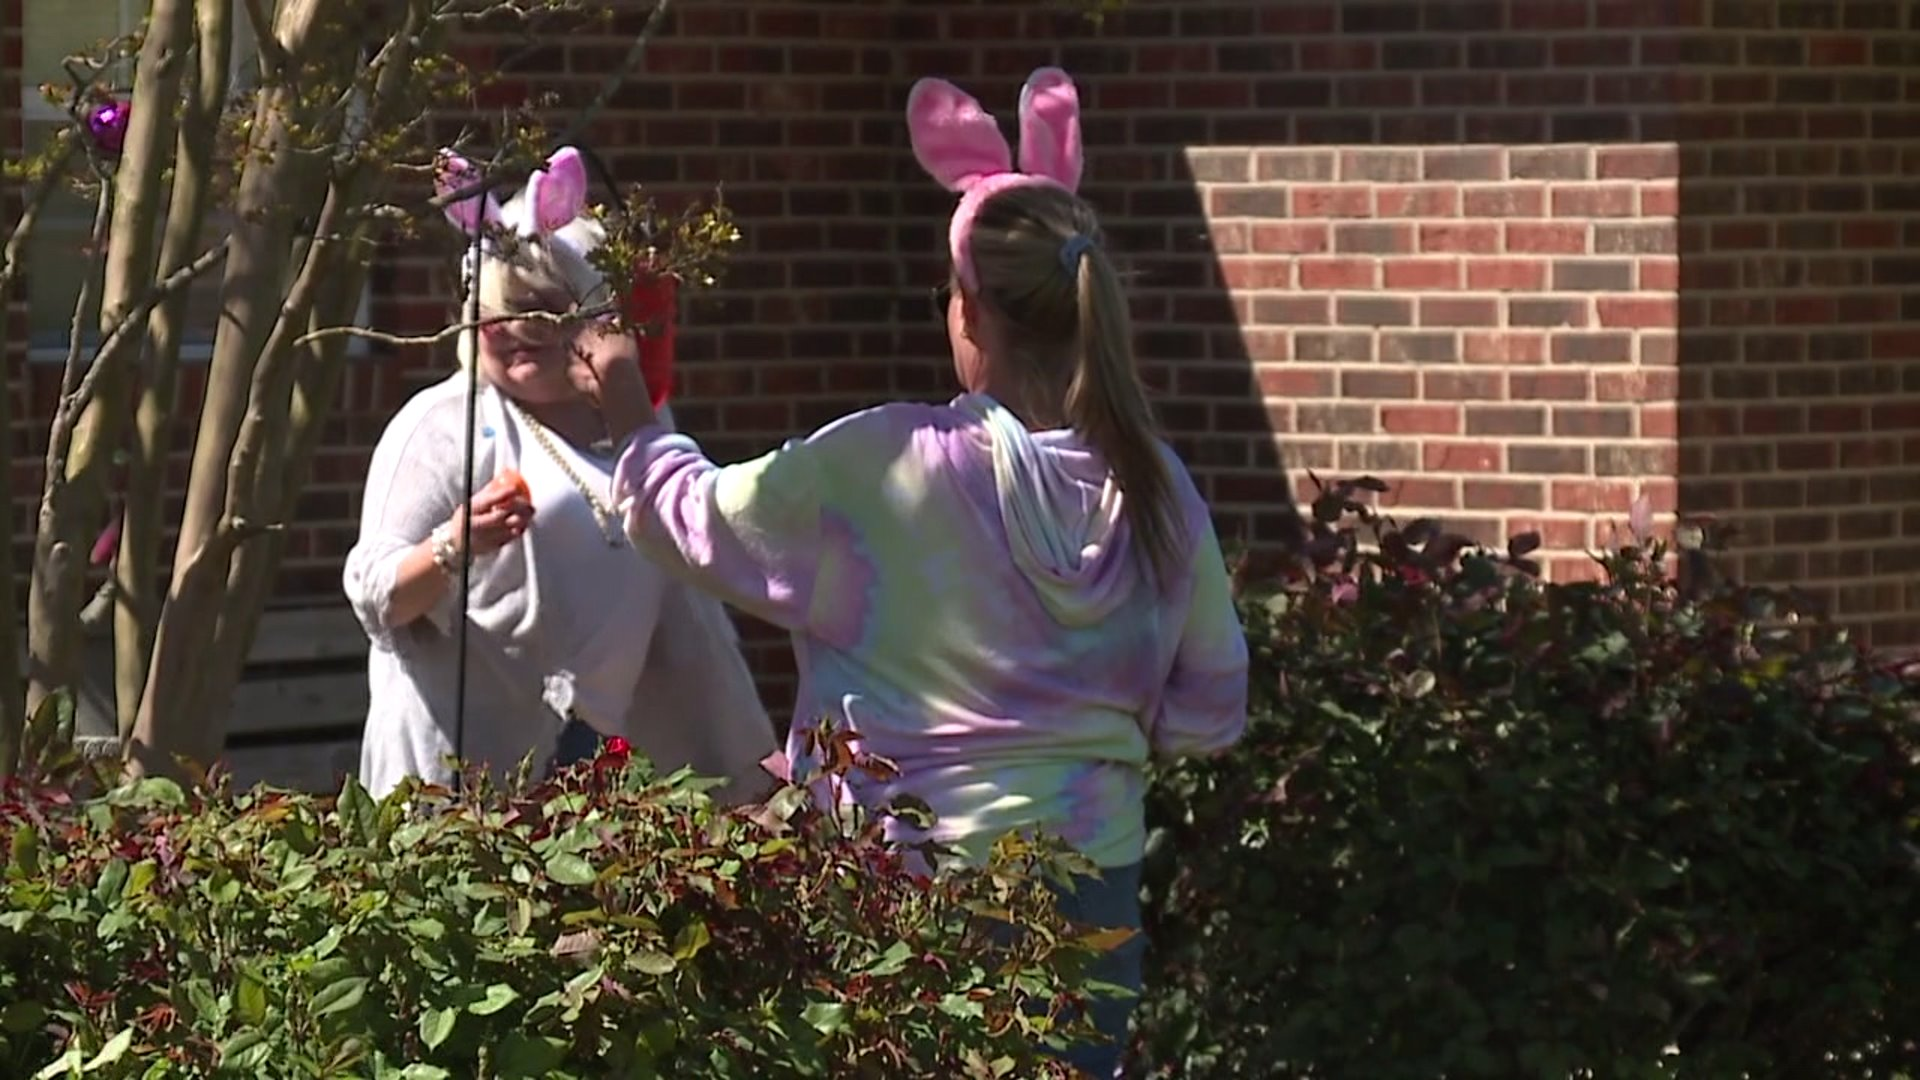 Winston-Salem nonprofit sets up Easter egg hunts for adults with disabilities living in group homes